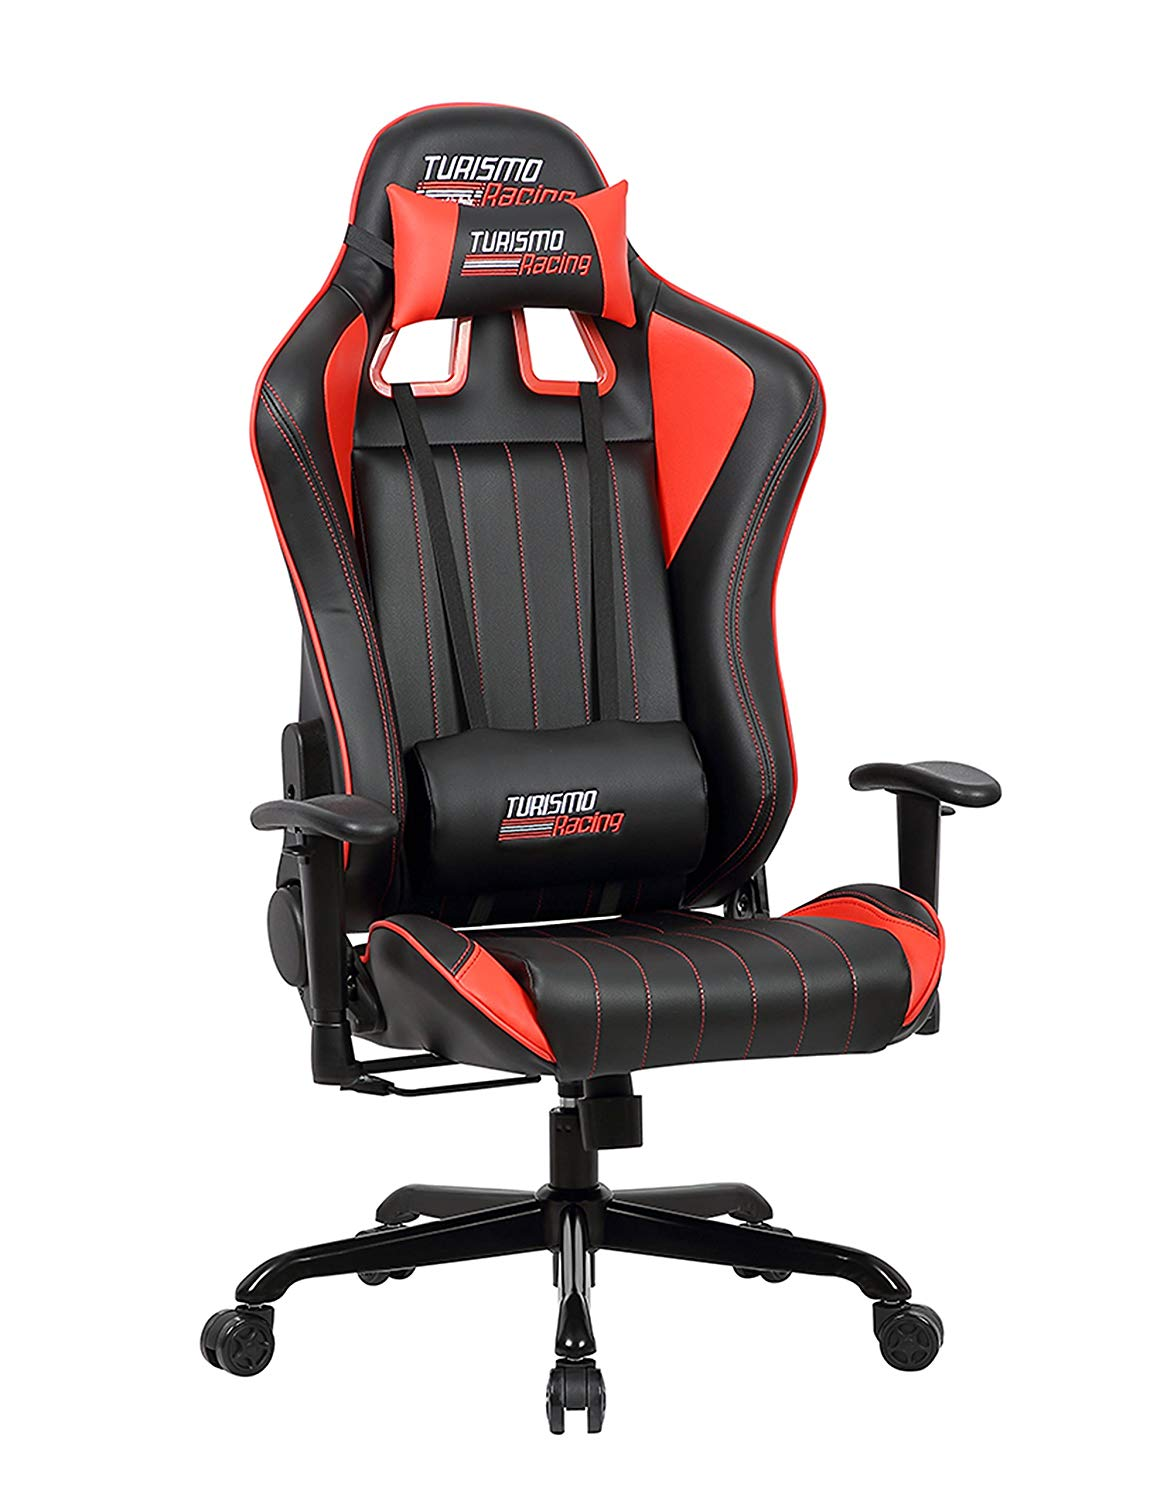 Turismo Gaming Chair Review Ultimategamechair